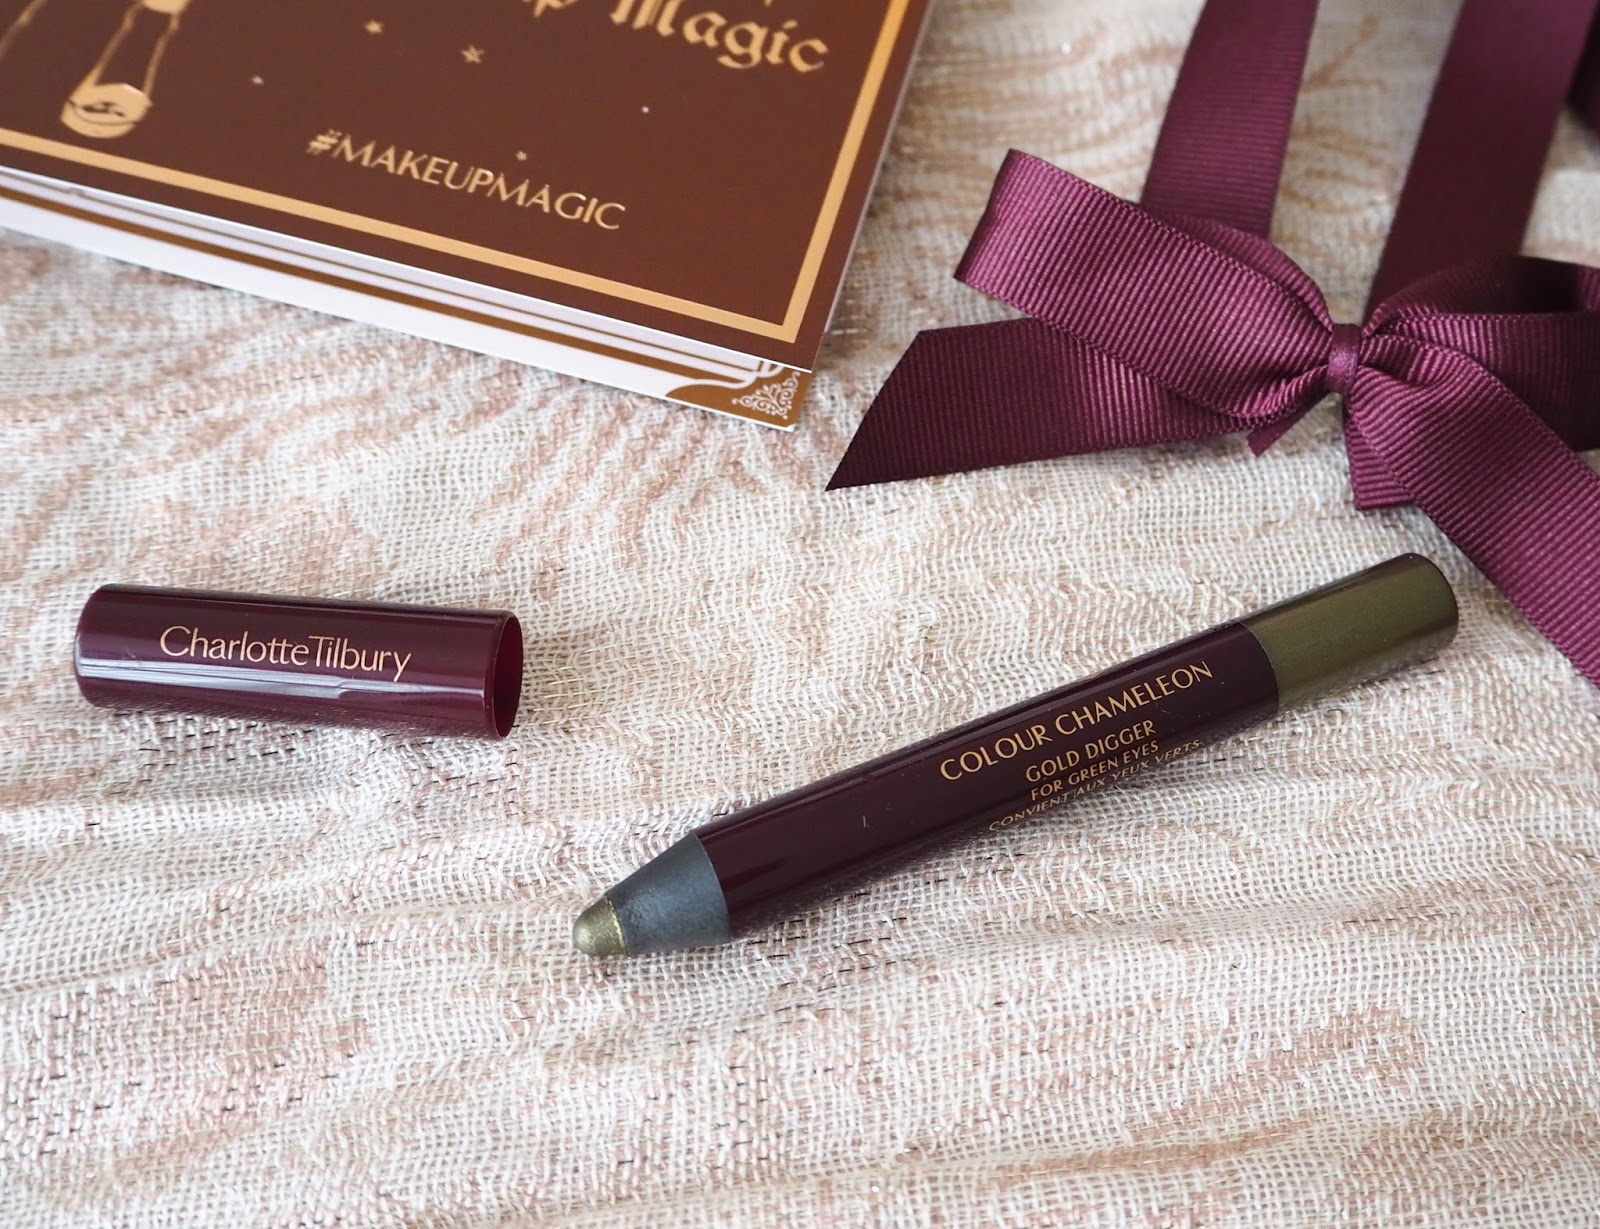 Charlotte Tilbury Eye Makeup: Nocturnal Cat Eyes & Colour Chameleon | Katie Kirk Loves